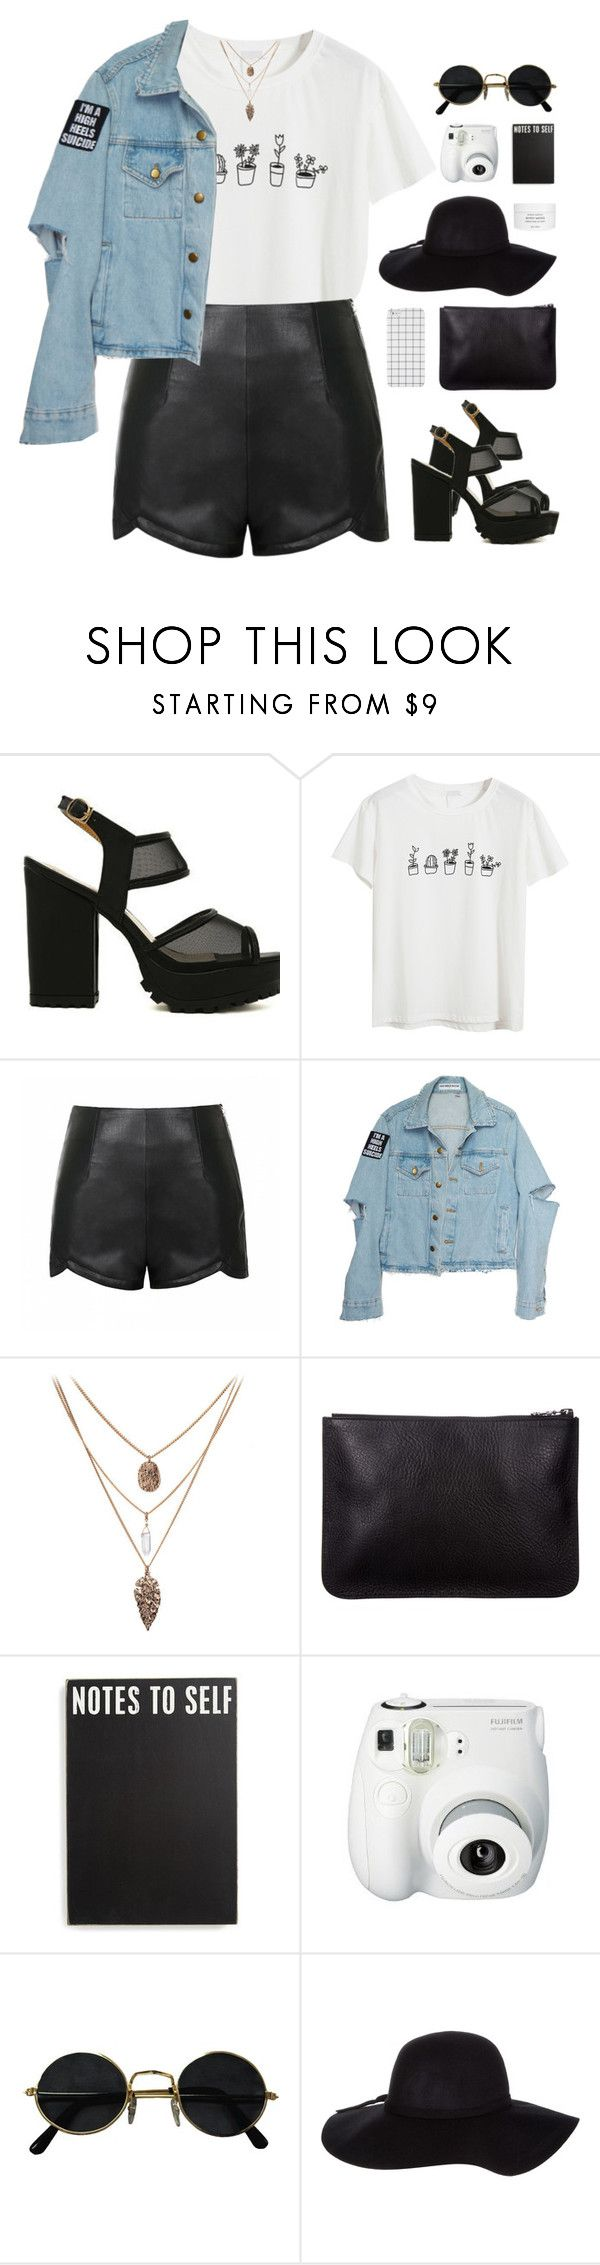 """""""O9.O8.15   5SOS CONCERT TOMORROW"""" by carechristine ❤ liked on Polyvore featuring My Mum Made It, Chicnova Fashion, Ally Fashion, Primitives By Kathy, Dorothy Perkins and Byredo"""